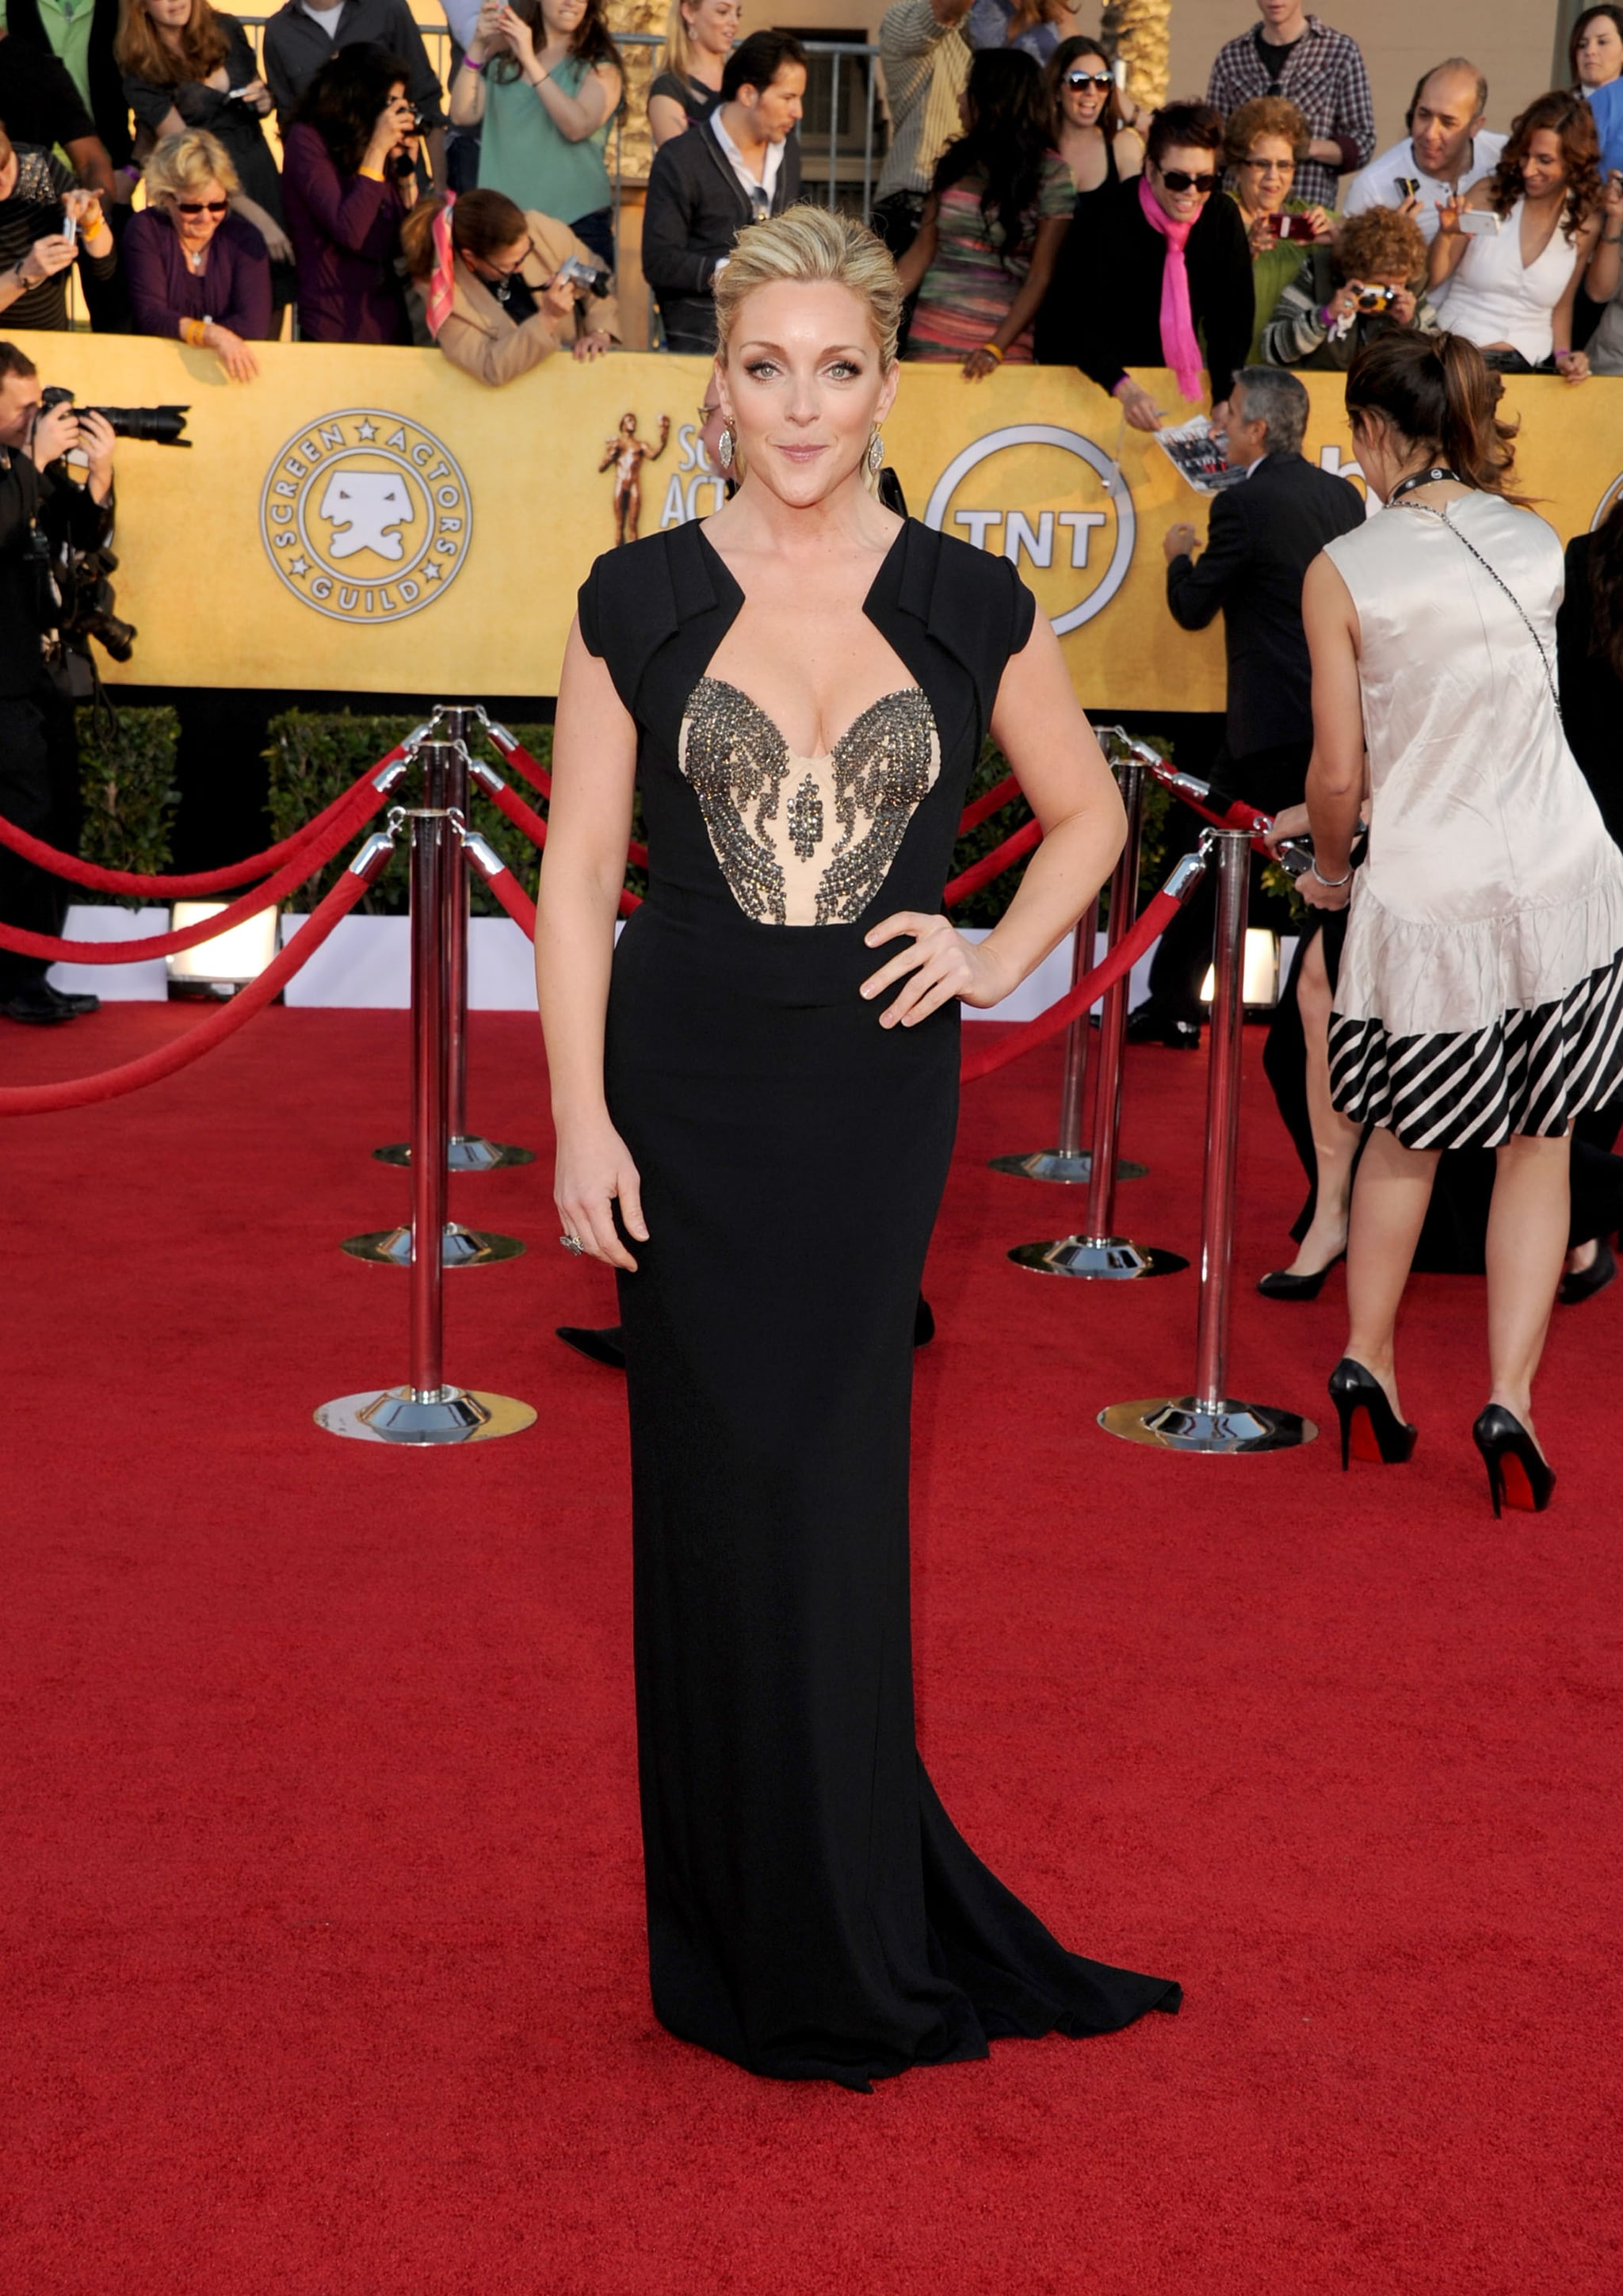 Jane Krakowski at the SAG Awards